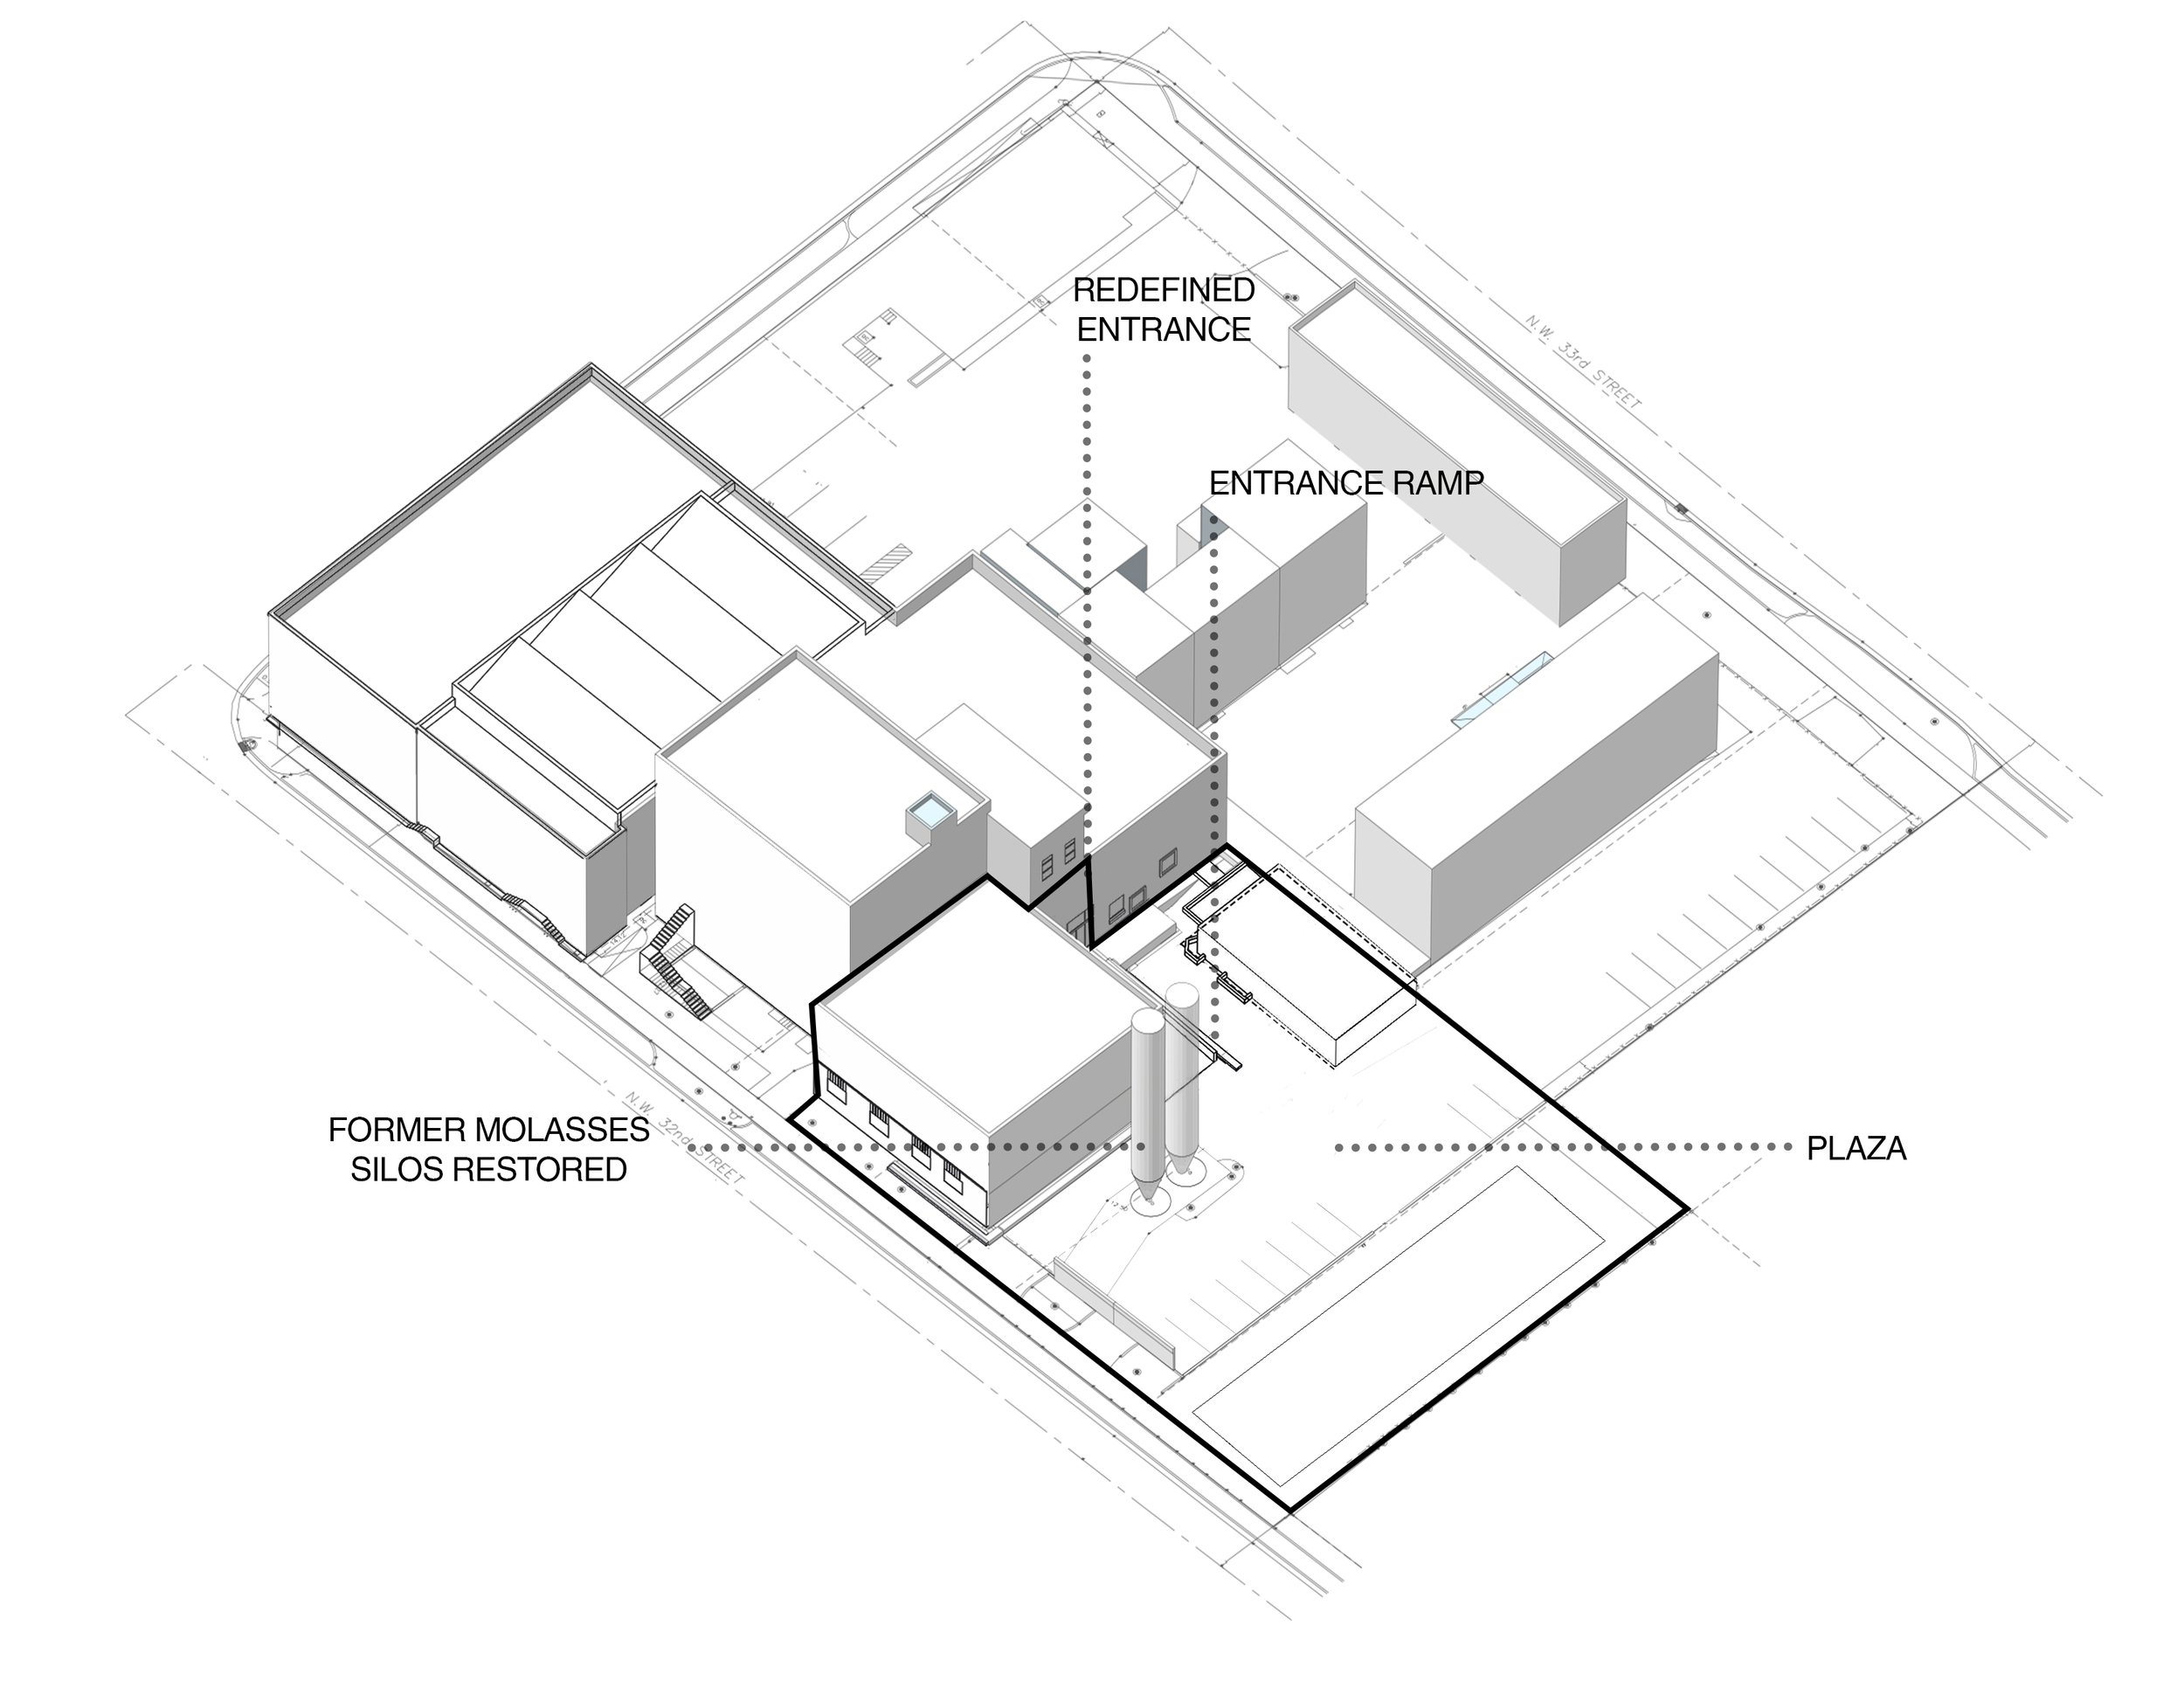 BAKEHOUSE AXONOMETRIC VIEW 3.jpg